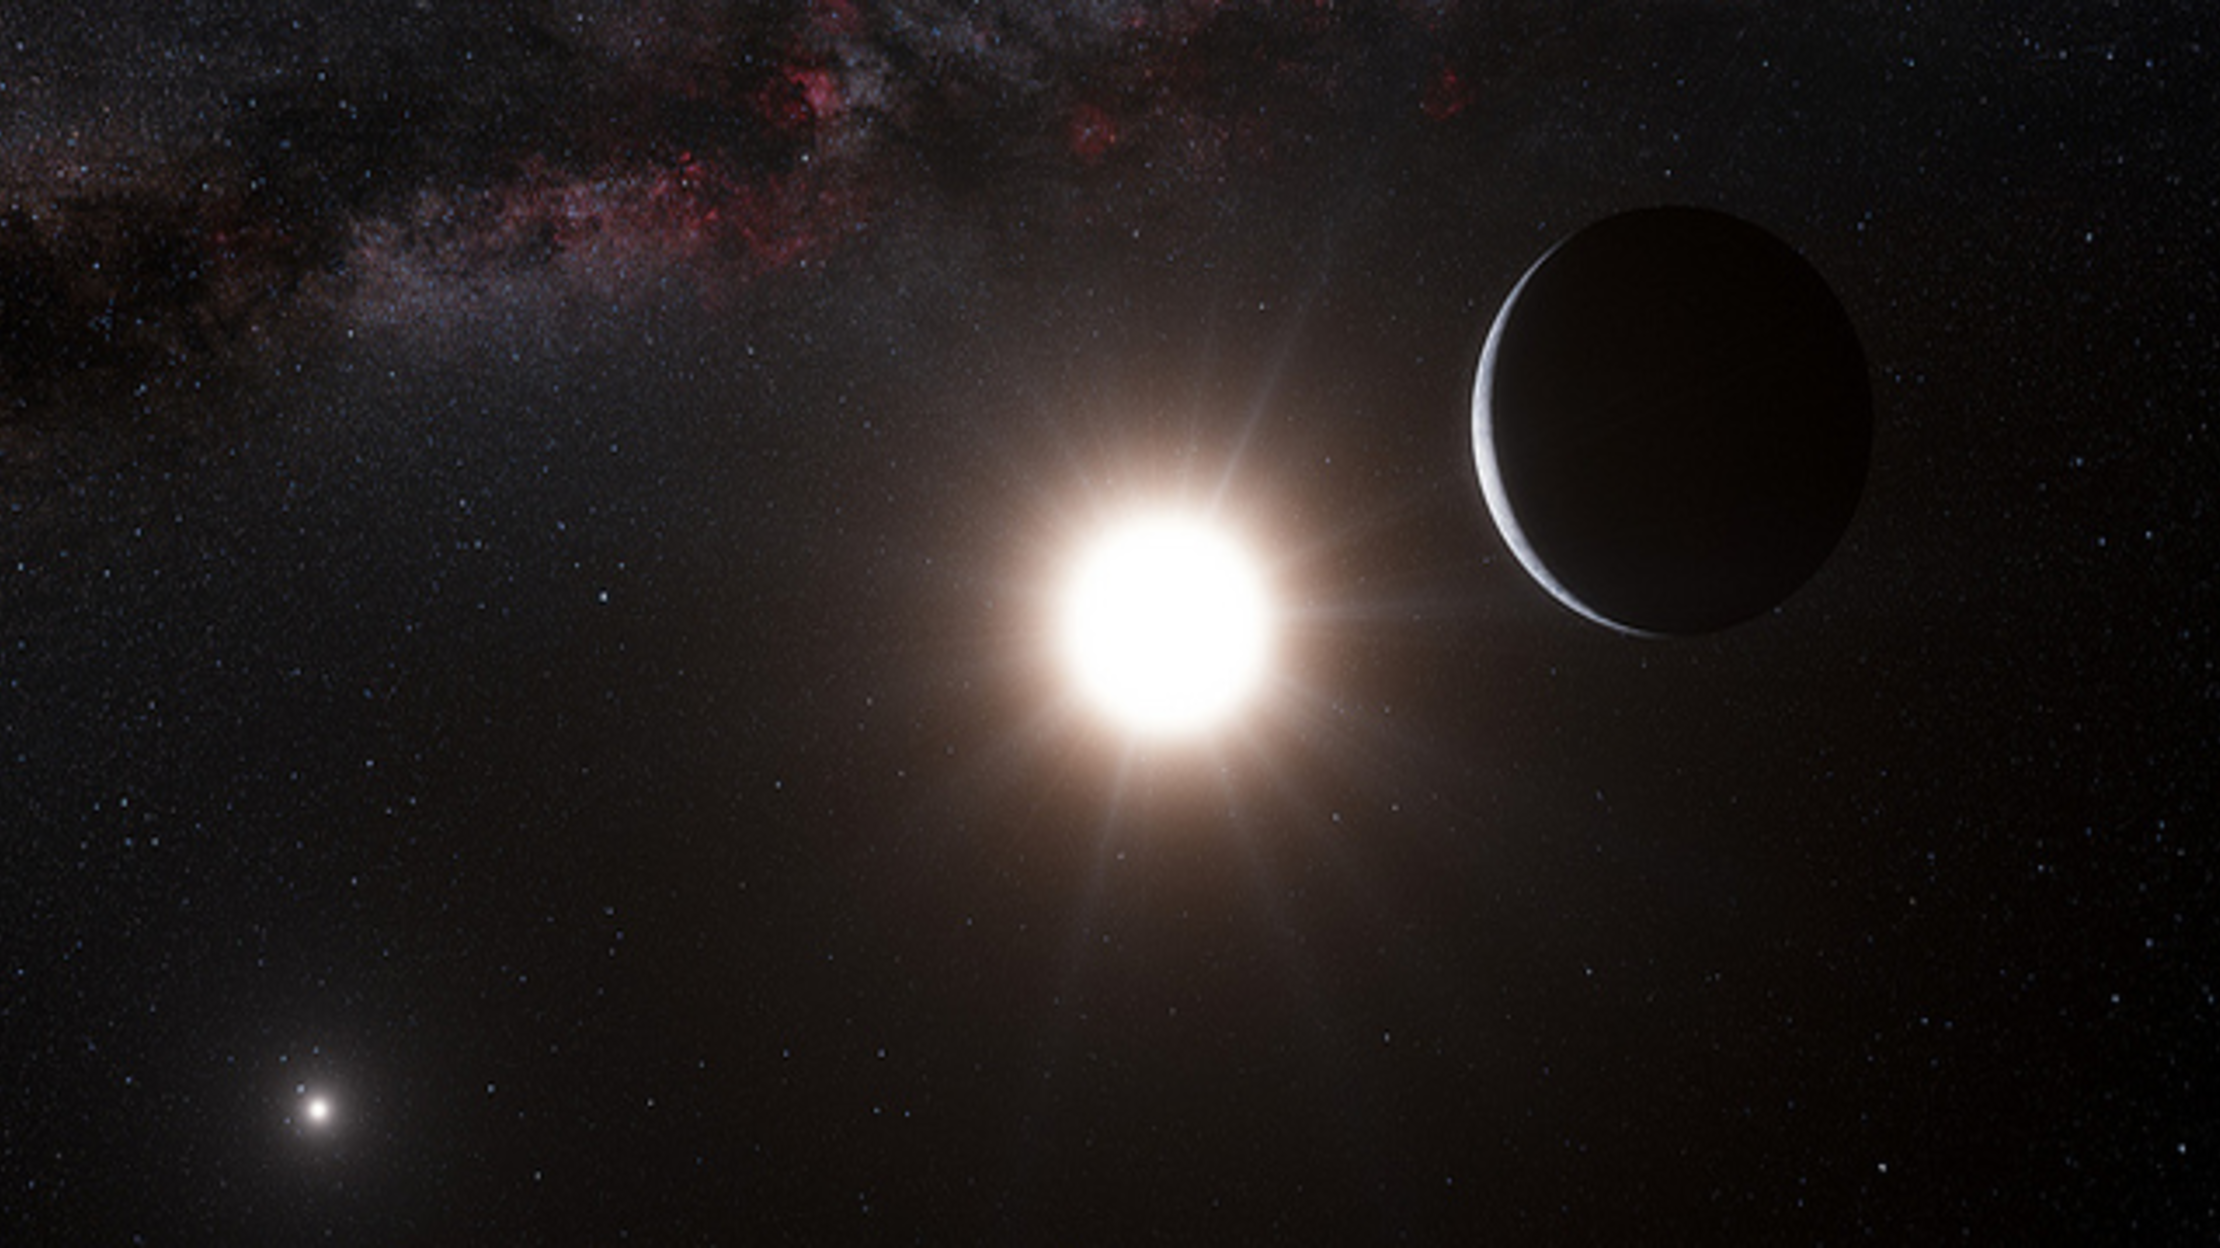 This App from NASA Gives a Virtual Tour of 1000 Exoplanets